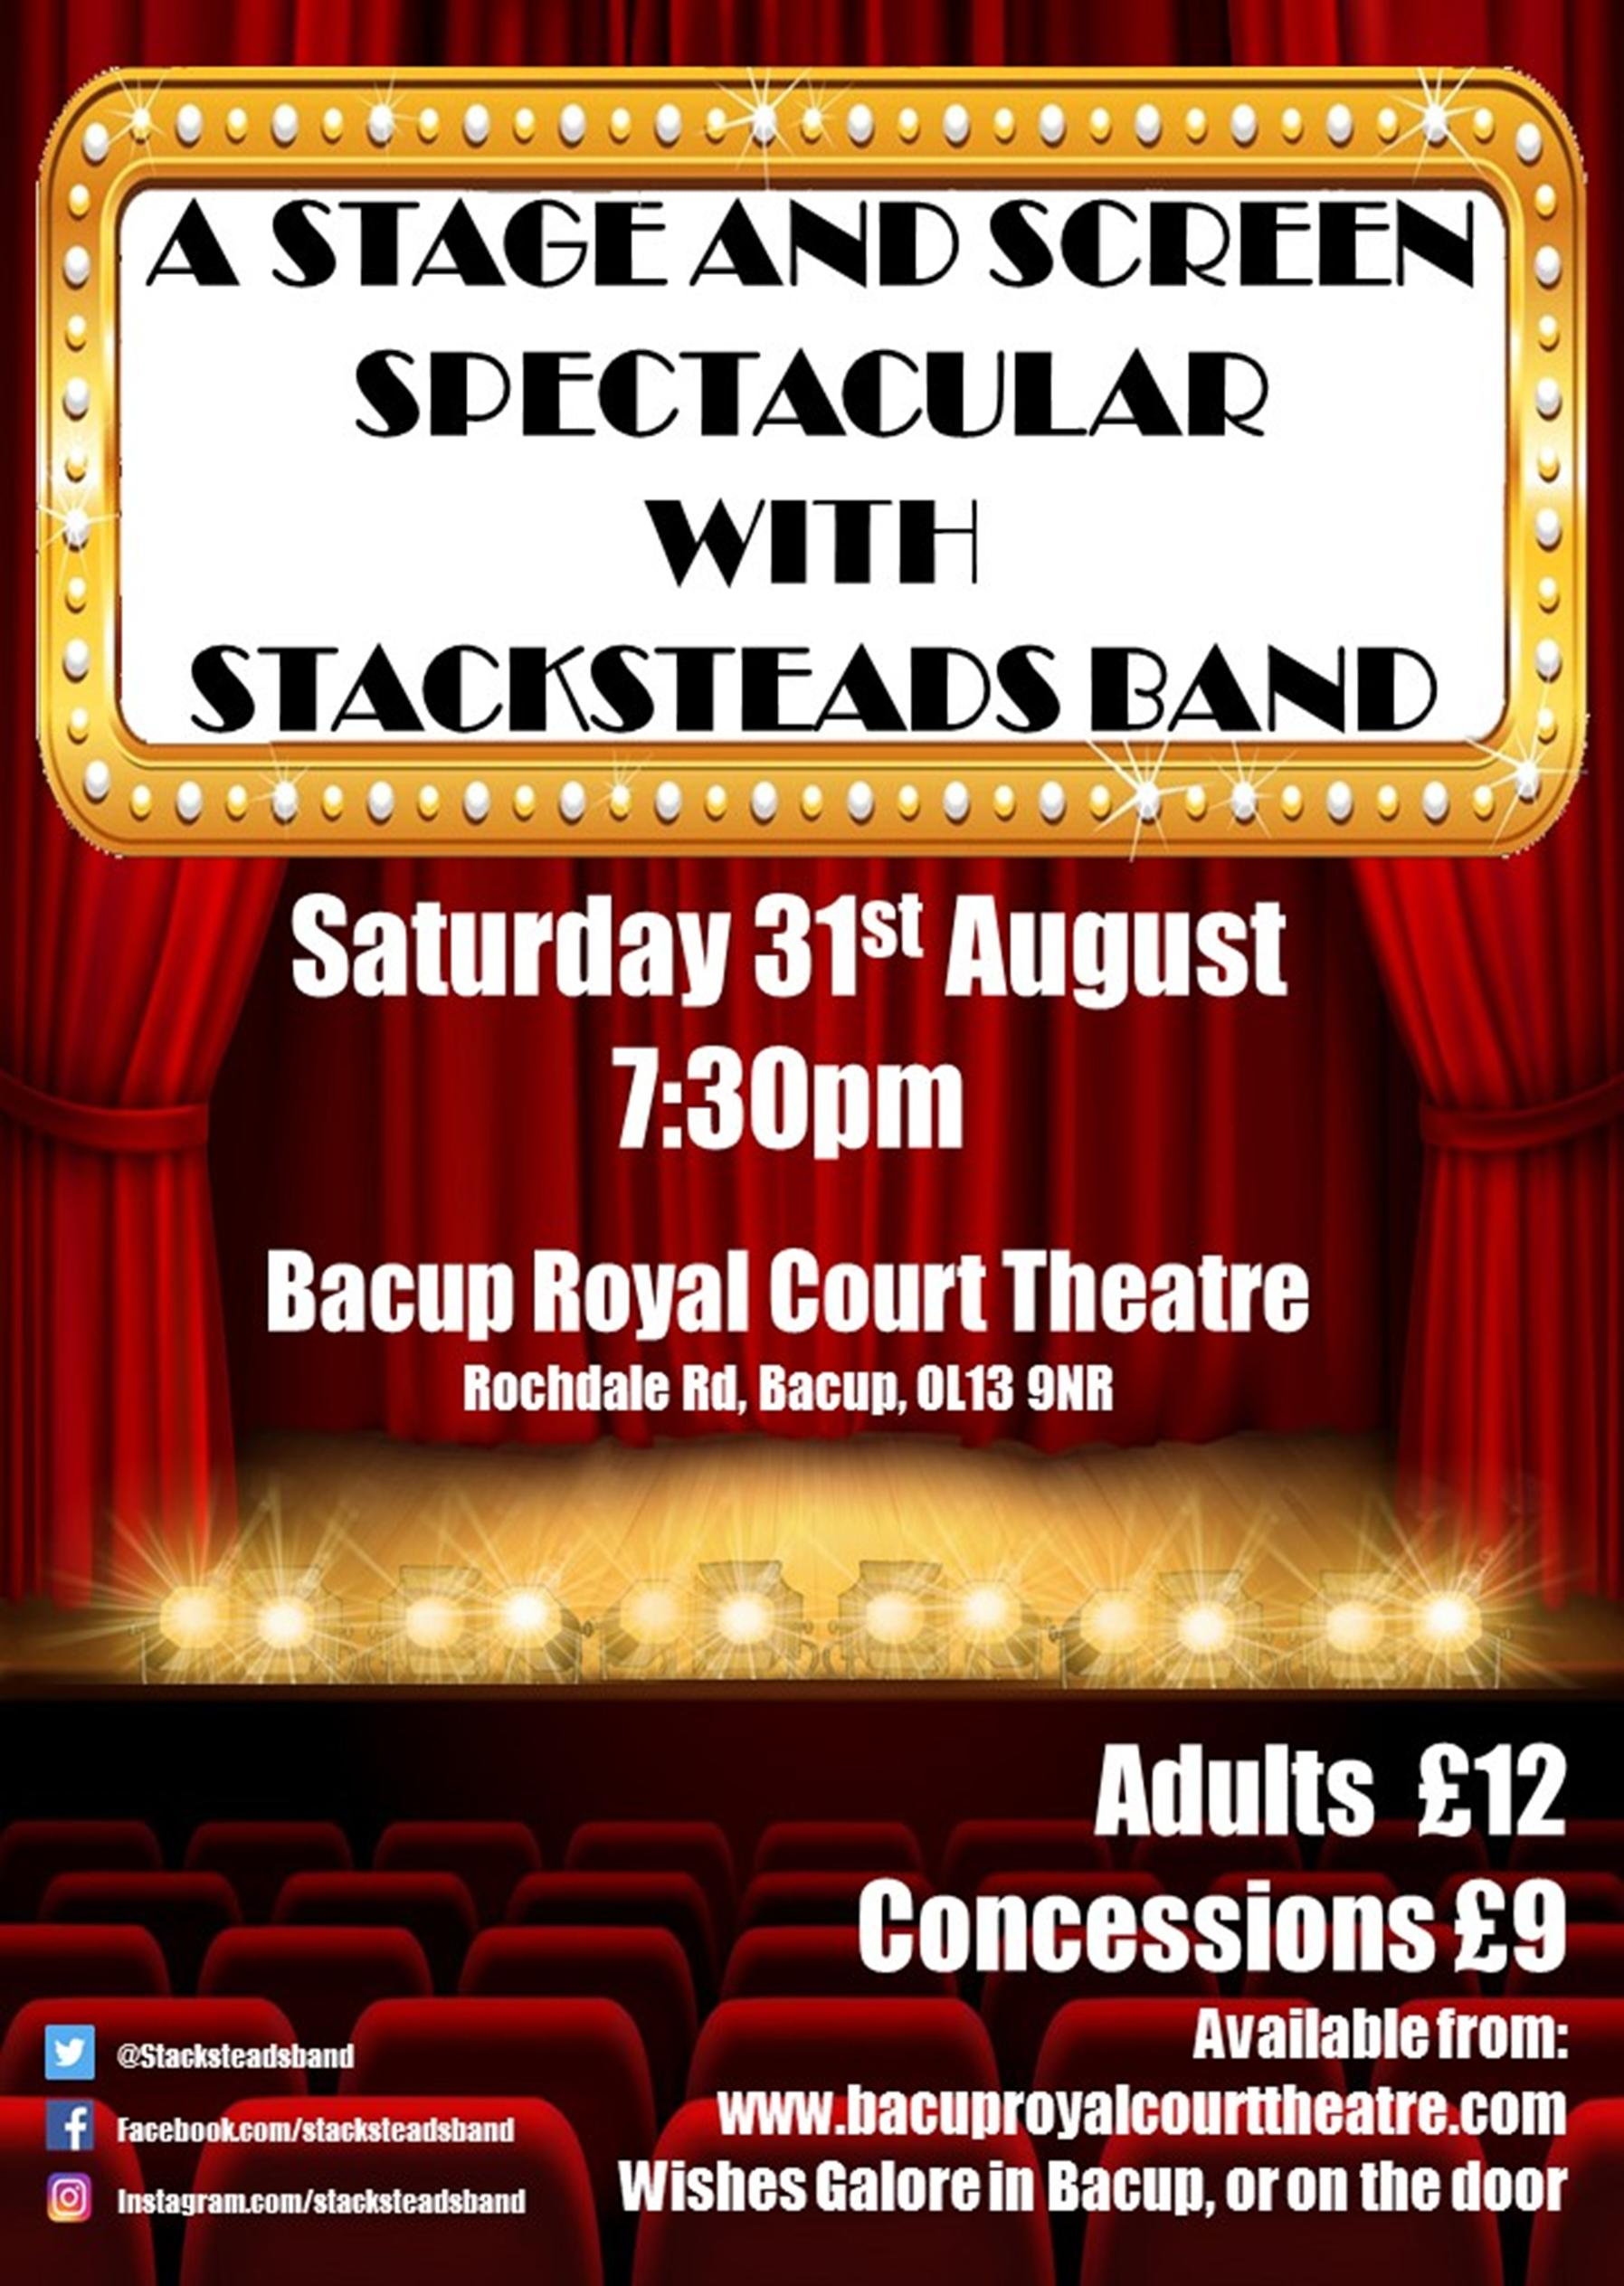 A Stage and Screen Spectacular with Stacksteads Band banner image